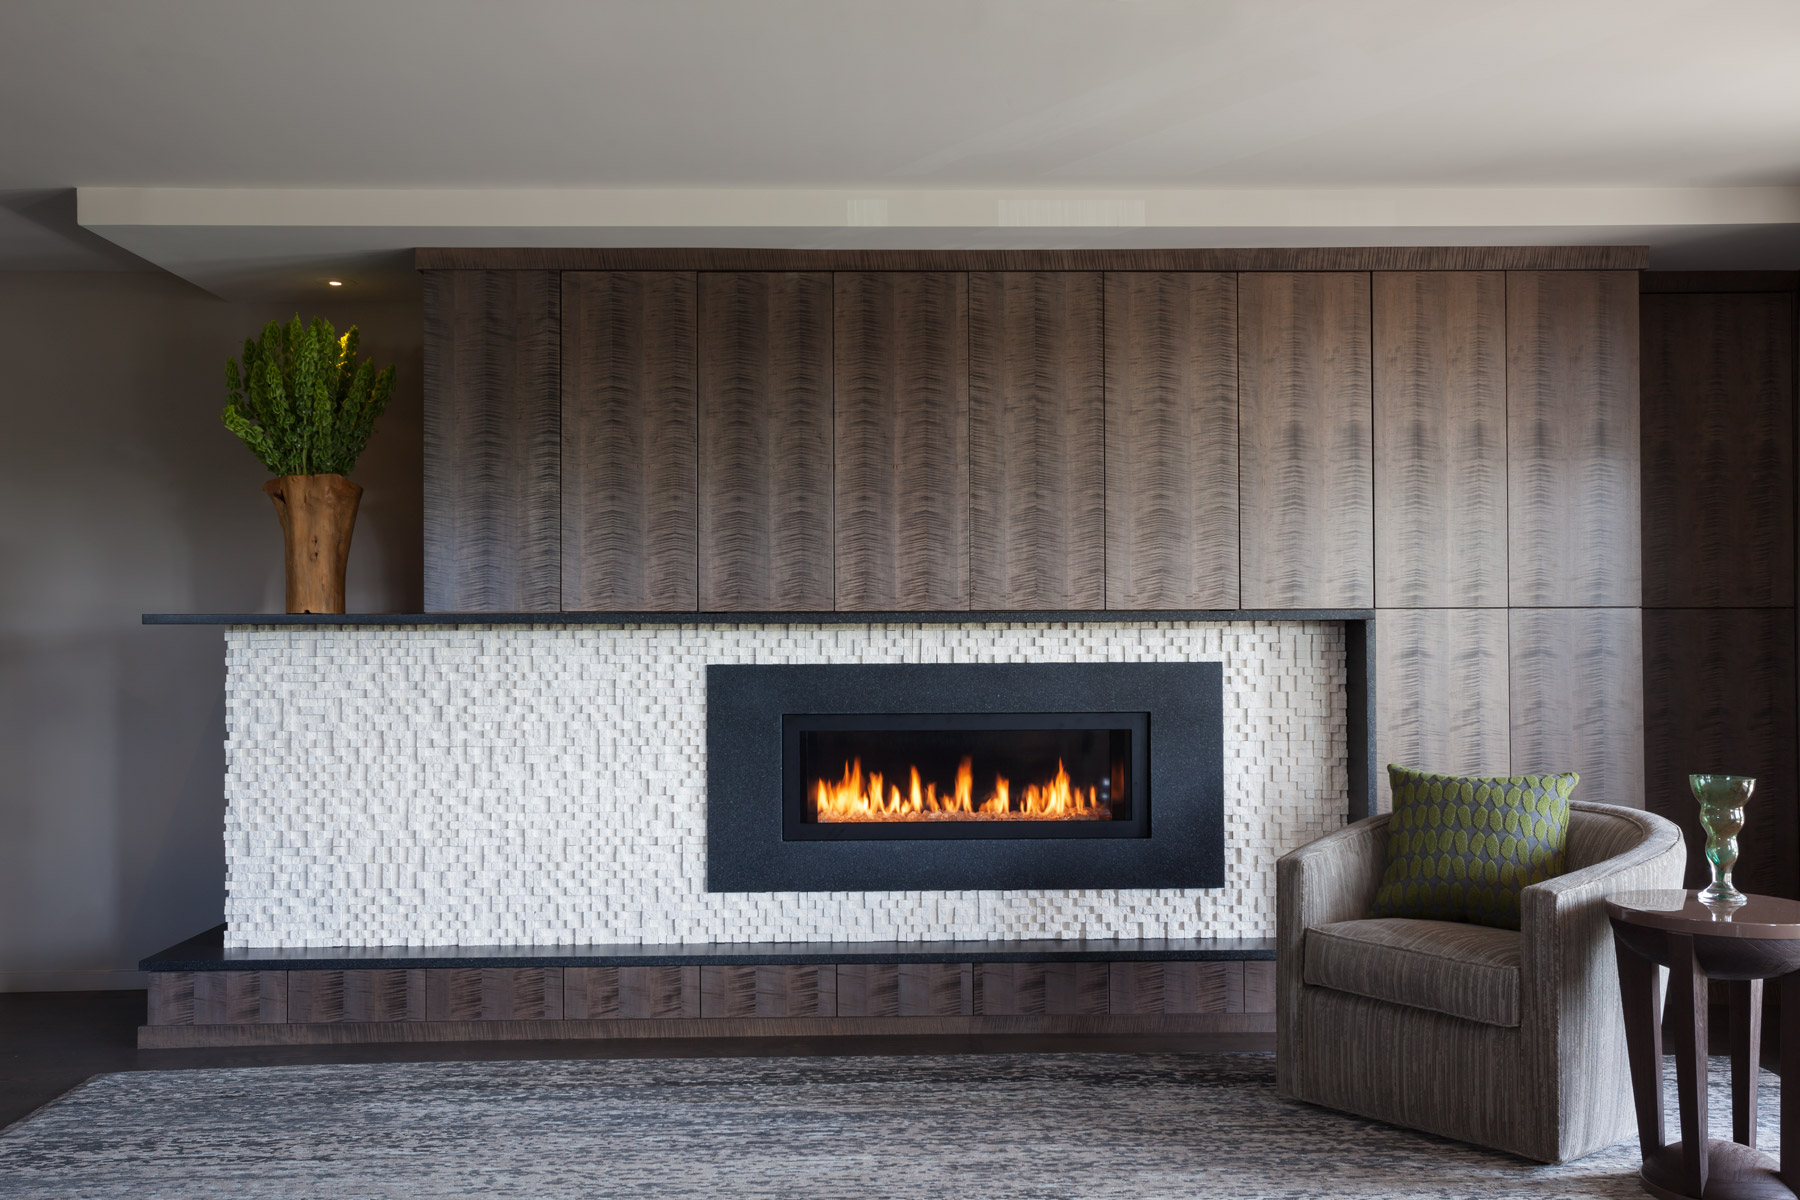 Linear-Fireplace-design-Minneapolis-interior-designer.jpg